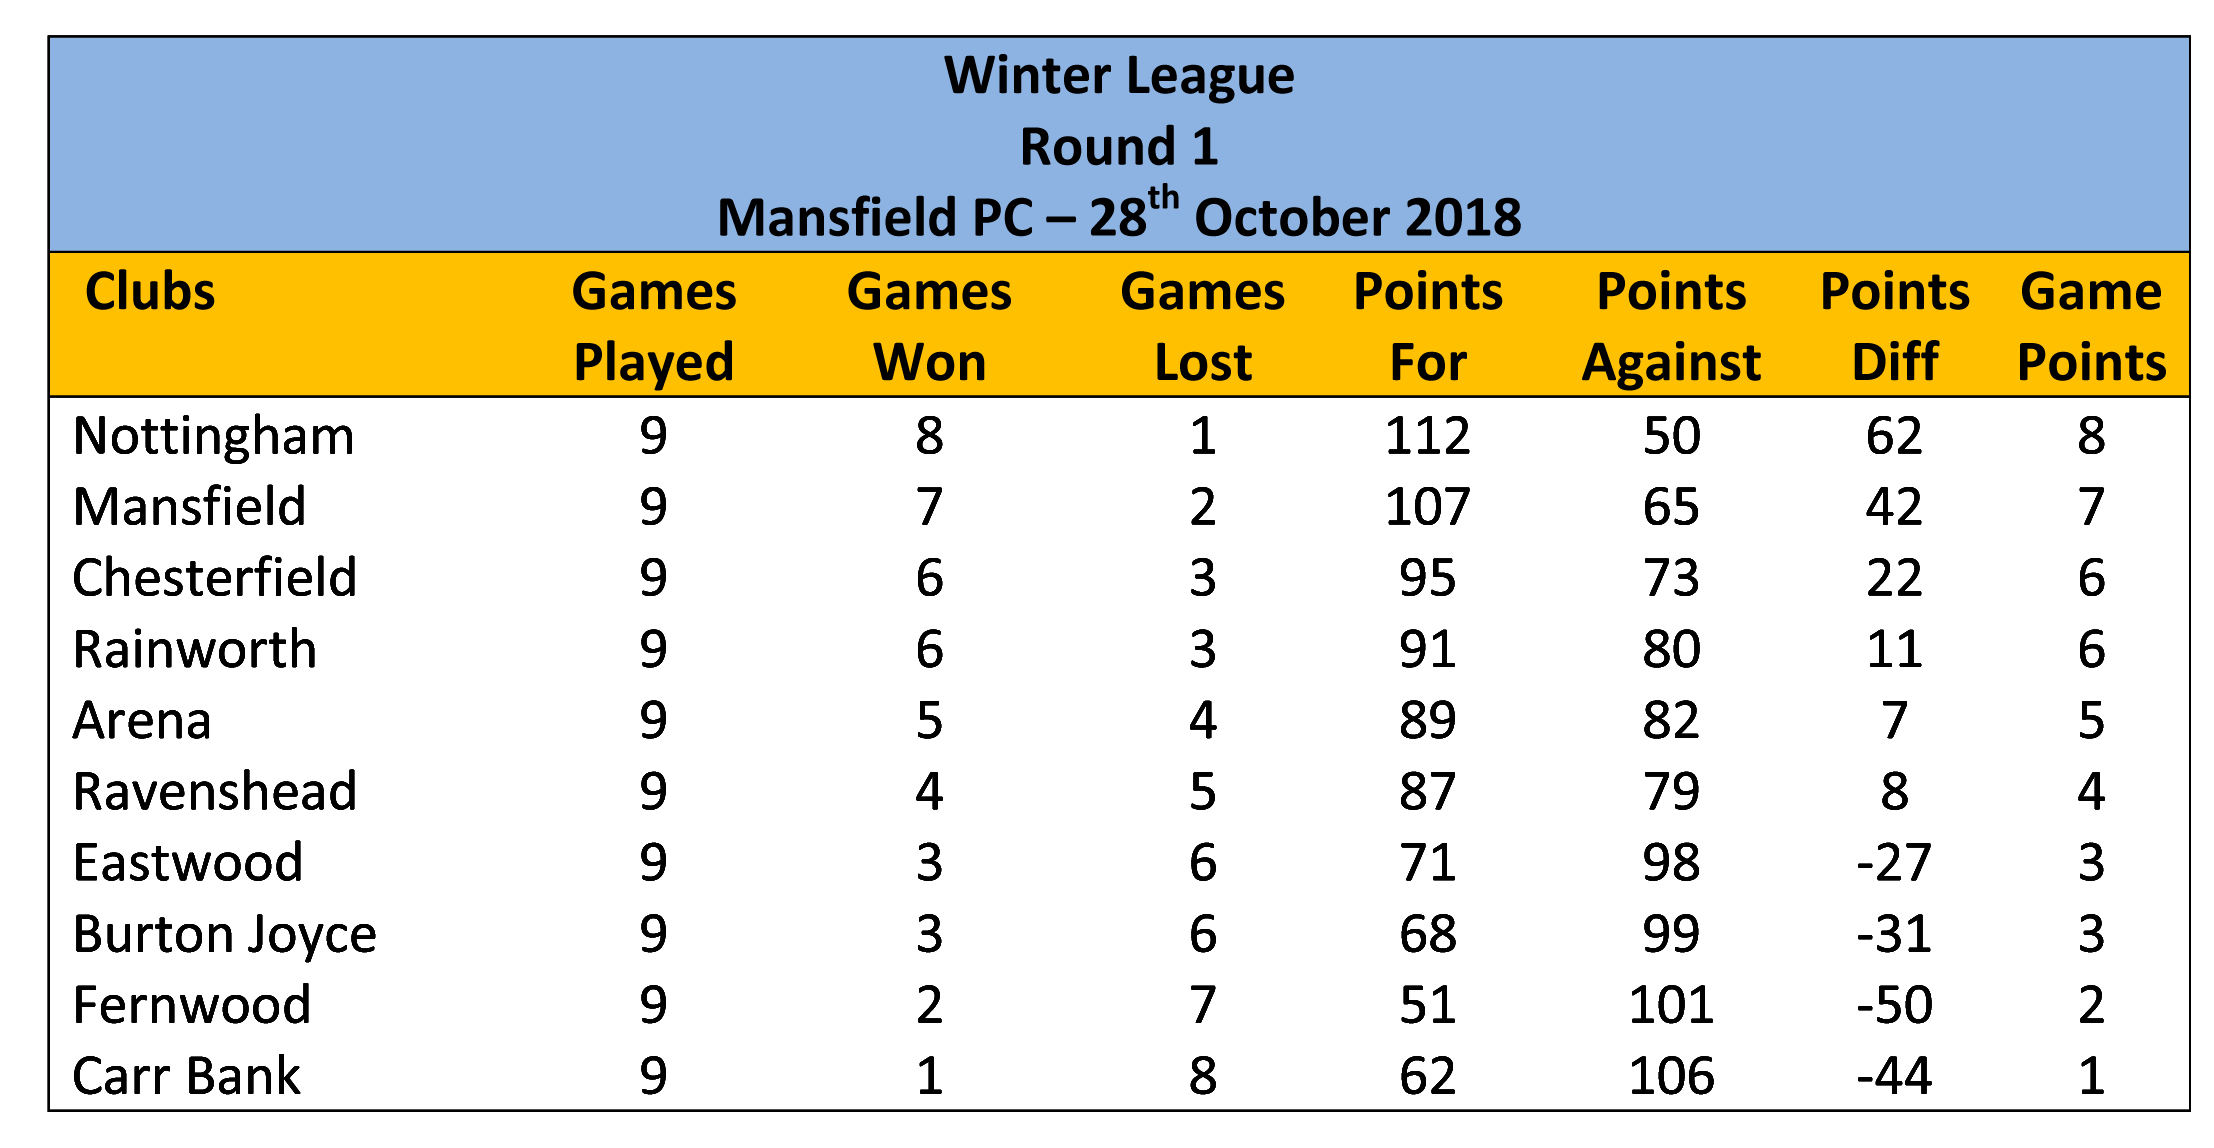 Winter-League-Results-Table---Round-1-1.jpg